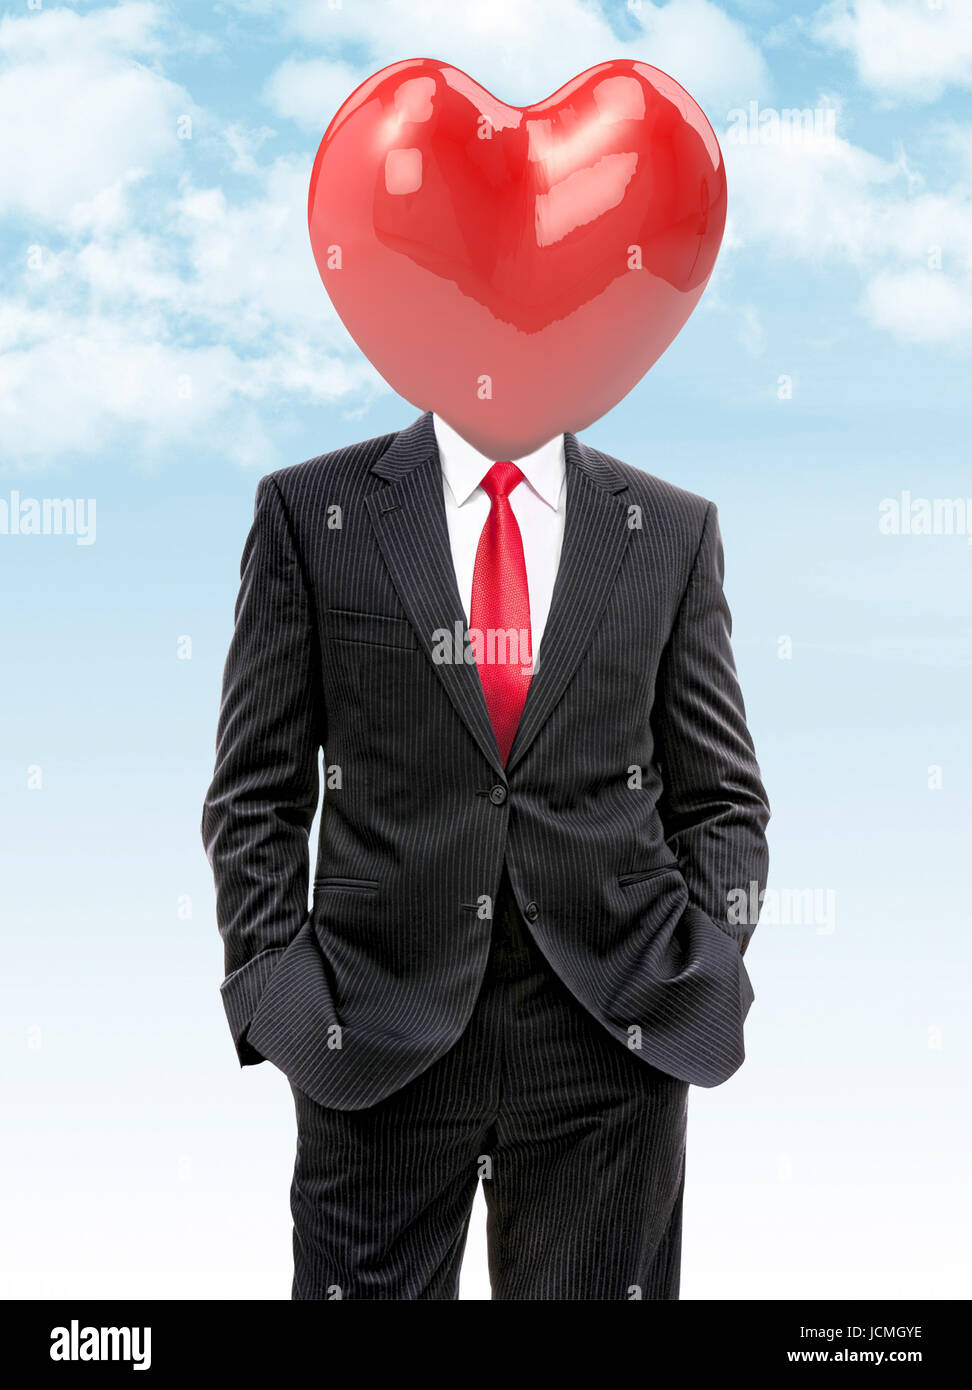 business man with big heart instead of head, 3d illustration - Stock Image